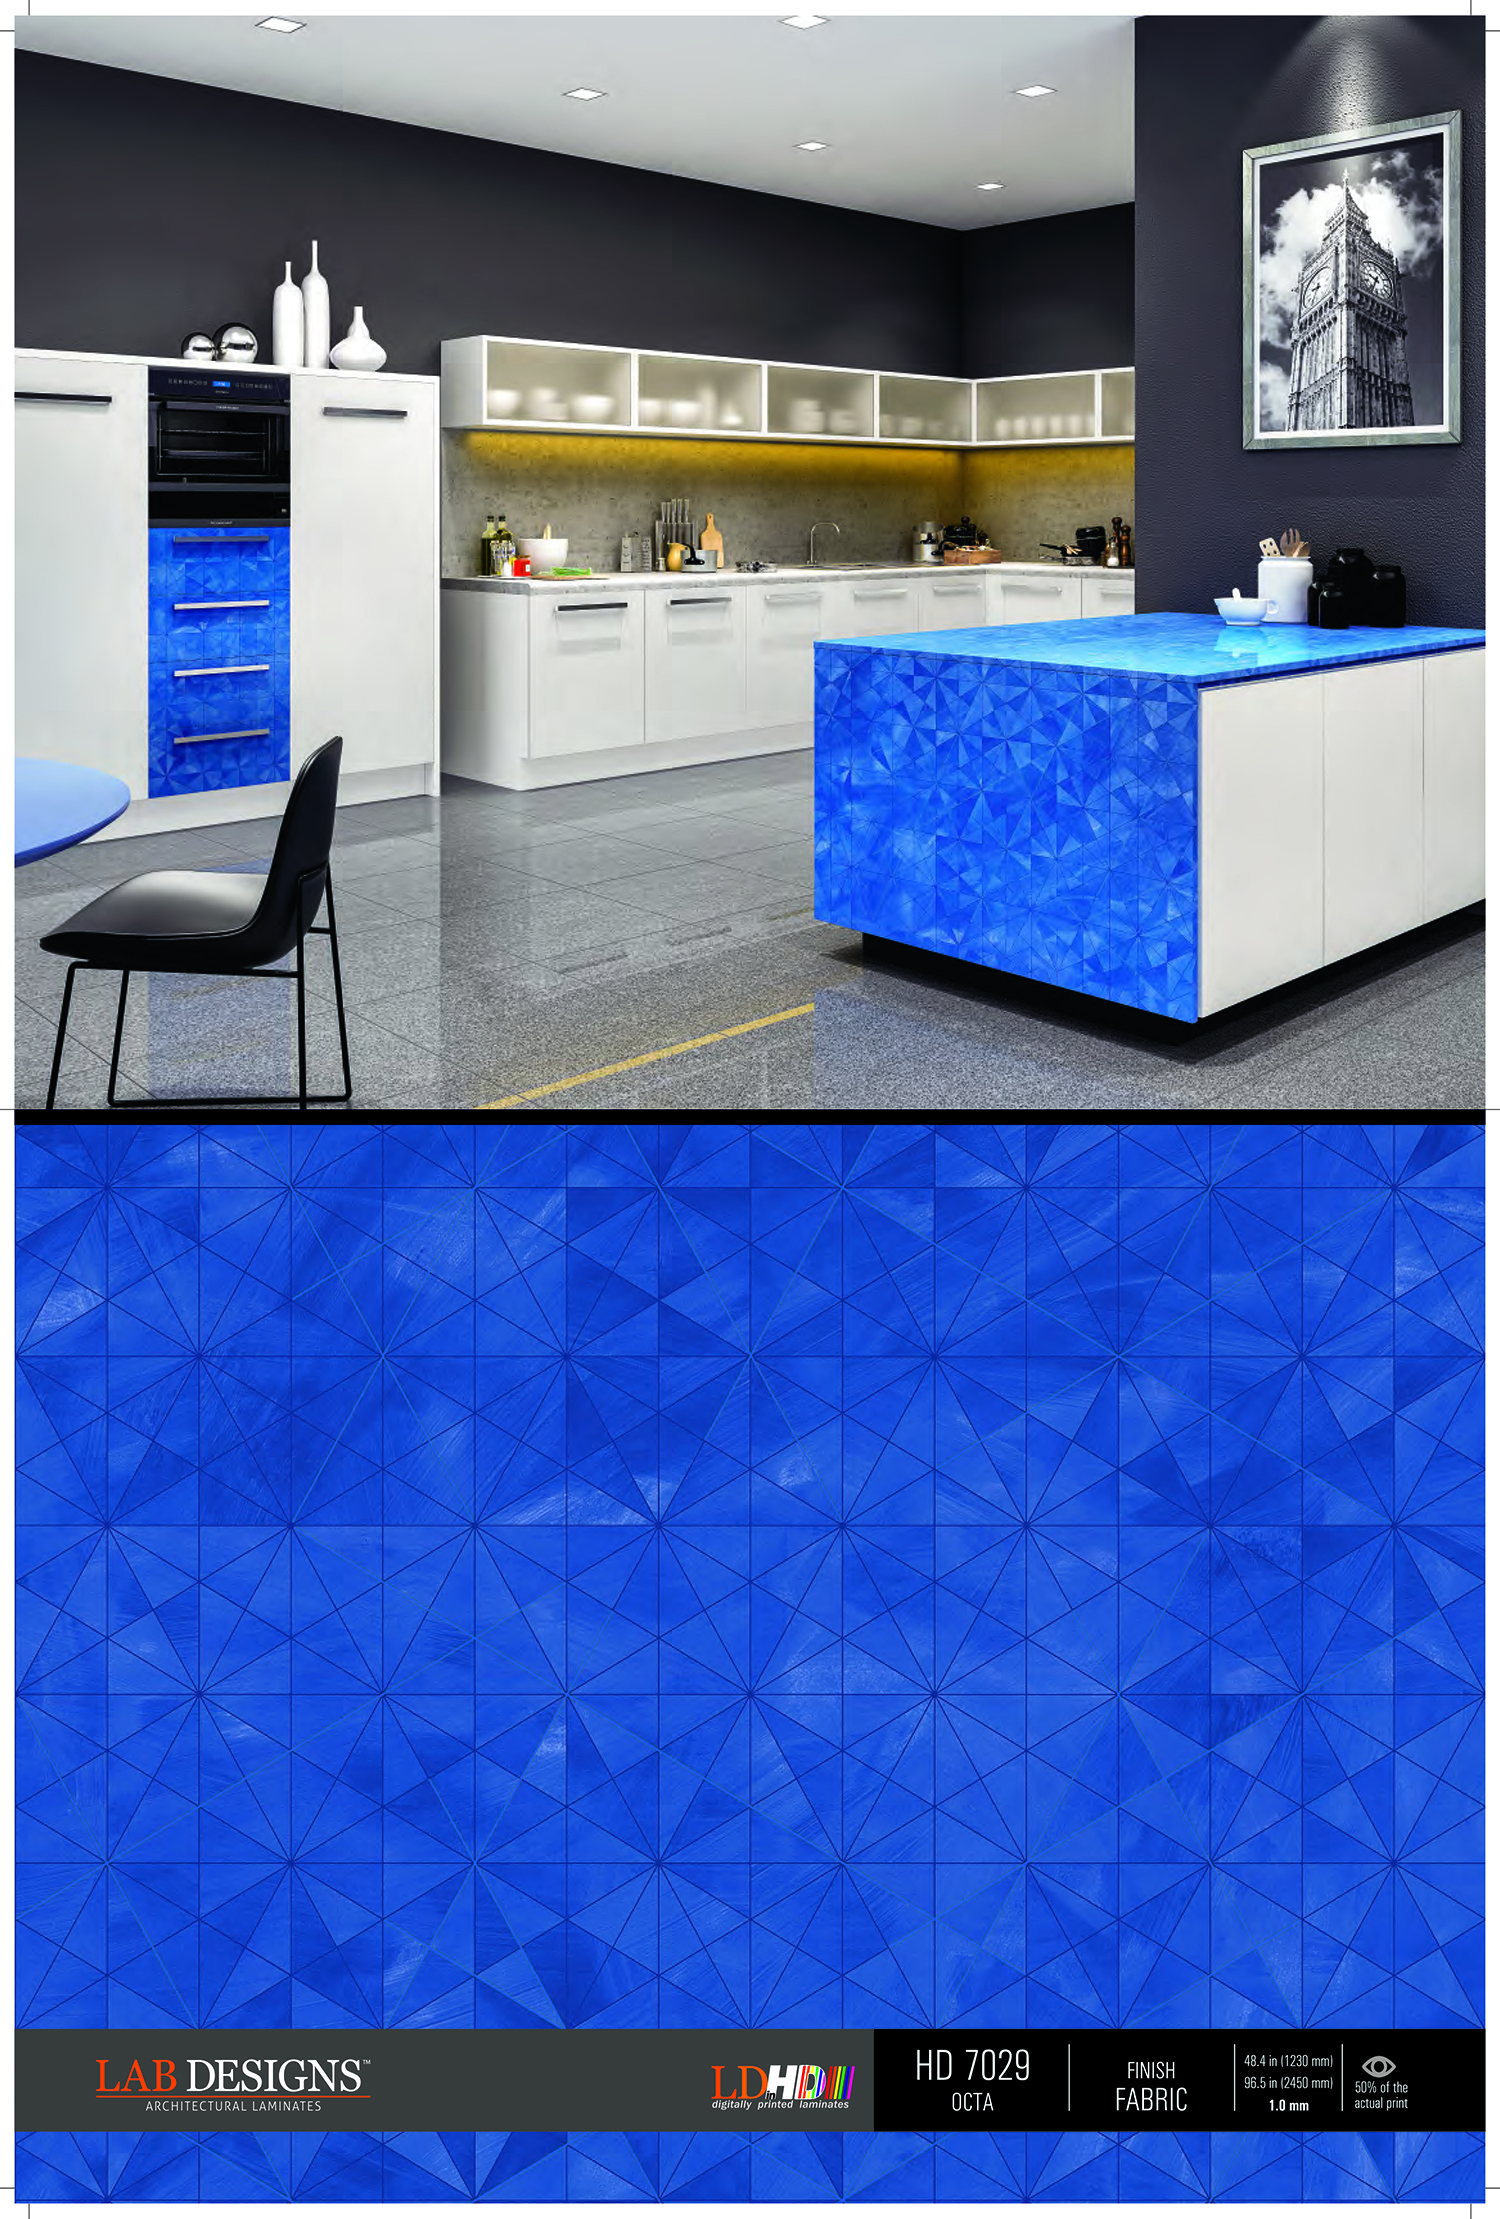 Lab Designs Digital Print Laminates HD 7029